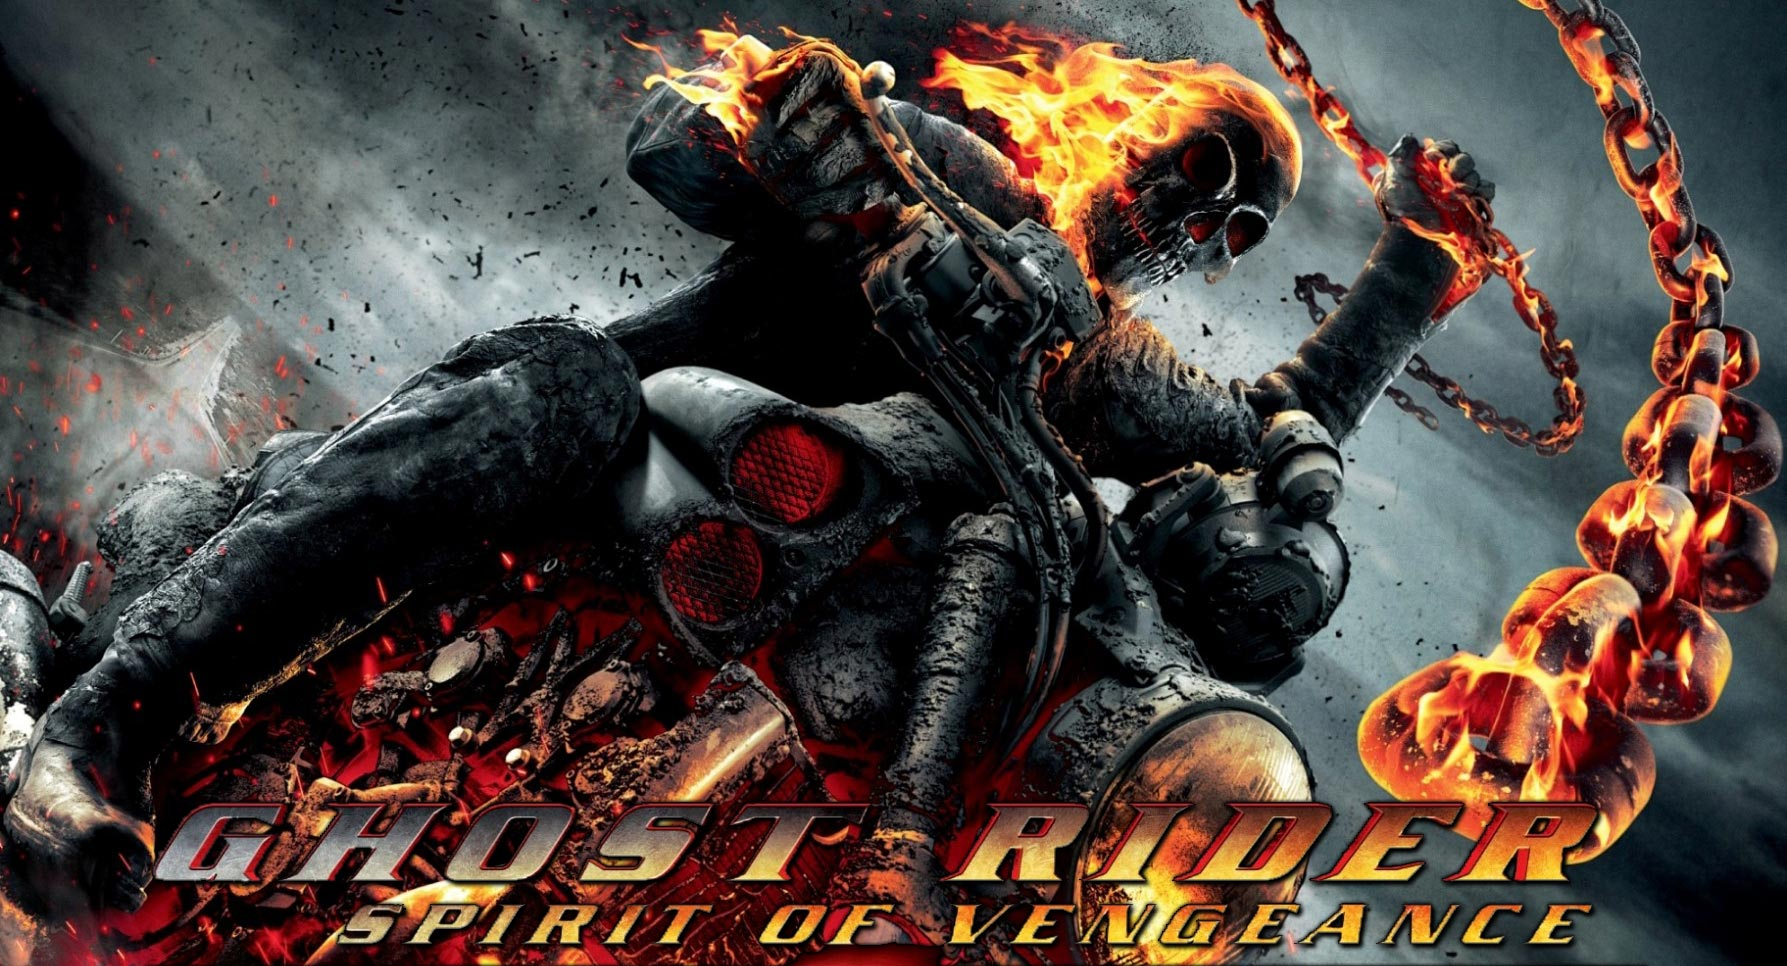 Ghost Rider 2: Spirit Of Vengeance 3D Kiss Ass On The First One By A